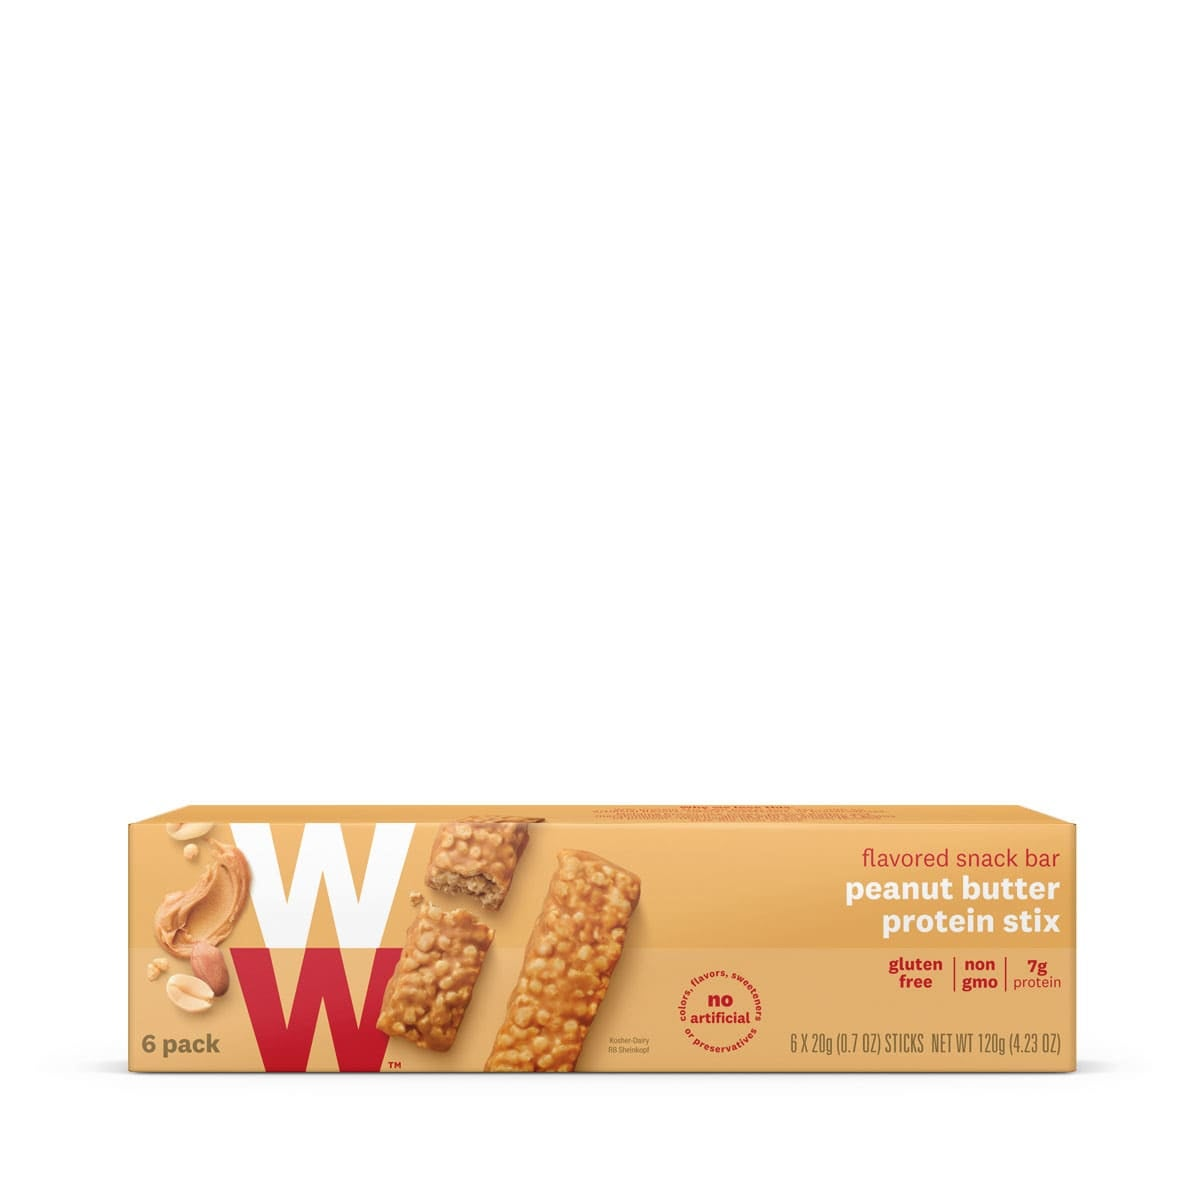 Peanut Butter Protein Stix, front of box, 6 pack, gluten free, non gmo, 7g of protein